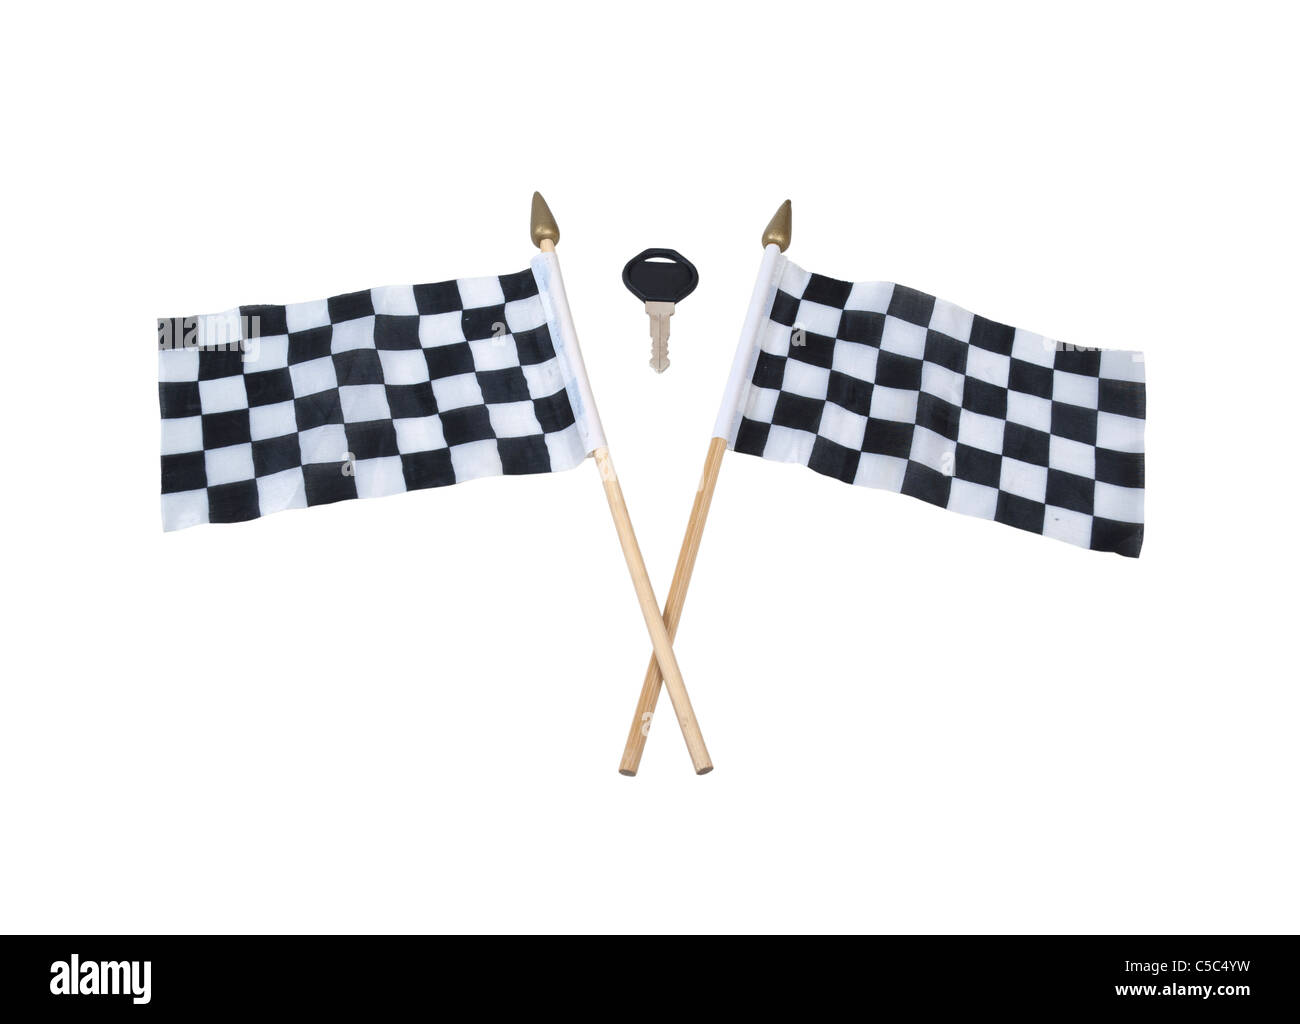 Crossing the finish line shown by an automobile key and checkered flags that symbolize the finish line - path included - Stock Image